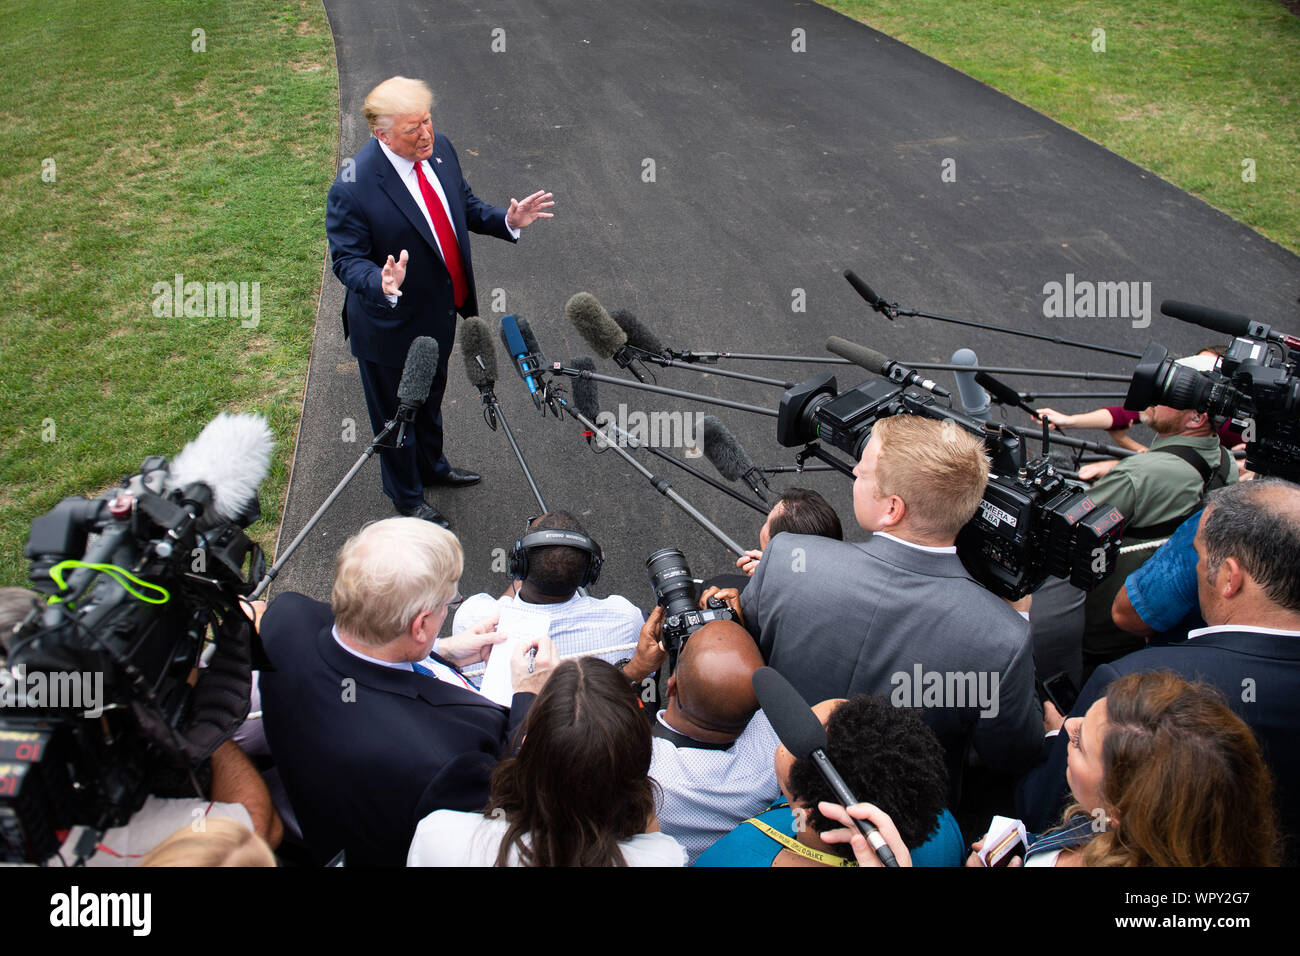 Washington DC, USA. 9th Sep 2019. President Donald Trump speaks to the media as he departs the White House for a rally in North Carolina, in Washington, DC on Monday, September 9, 2019. Photo by Kevin Dietsch/UPI Credit: UPI/Alamy Live News Stock Photo